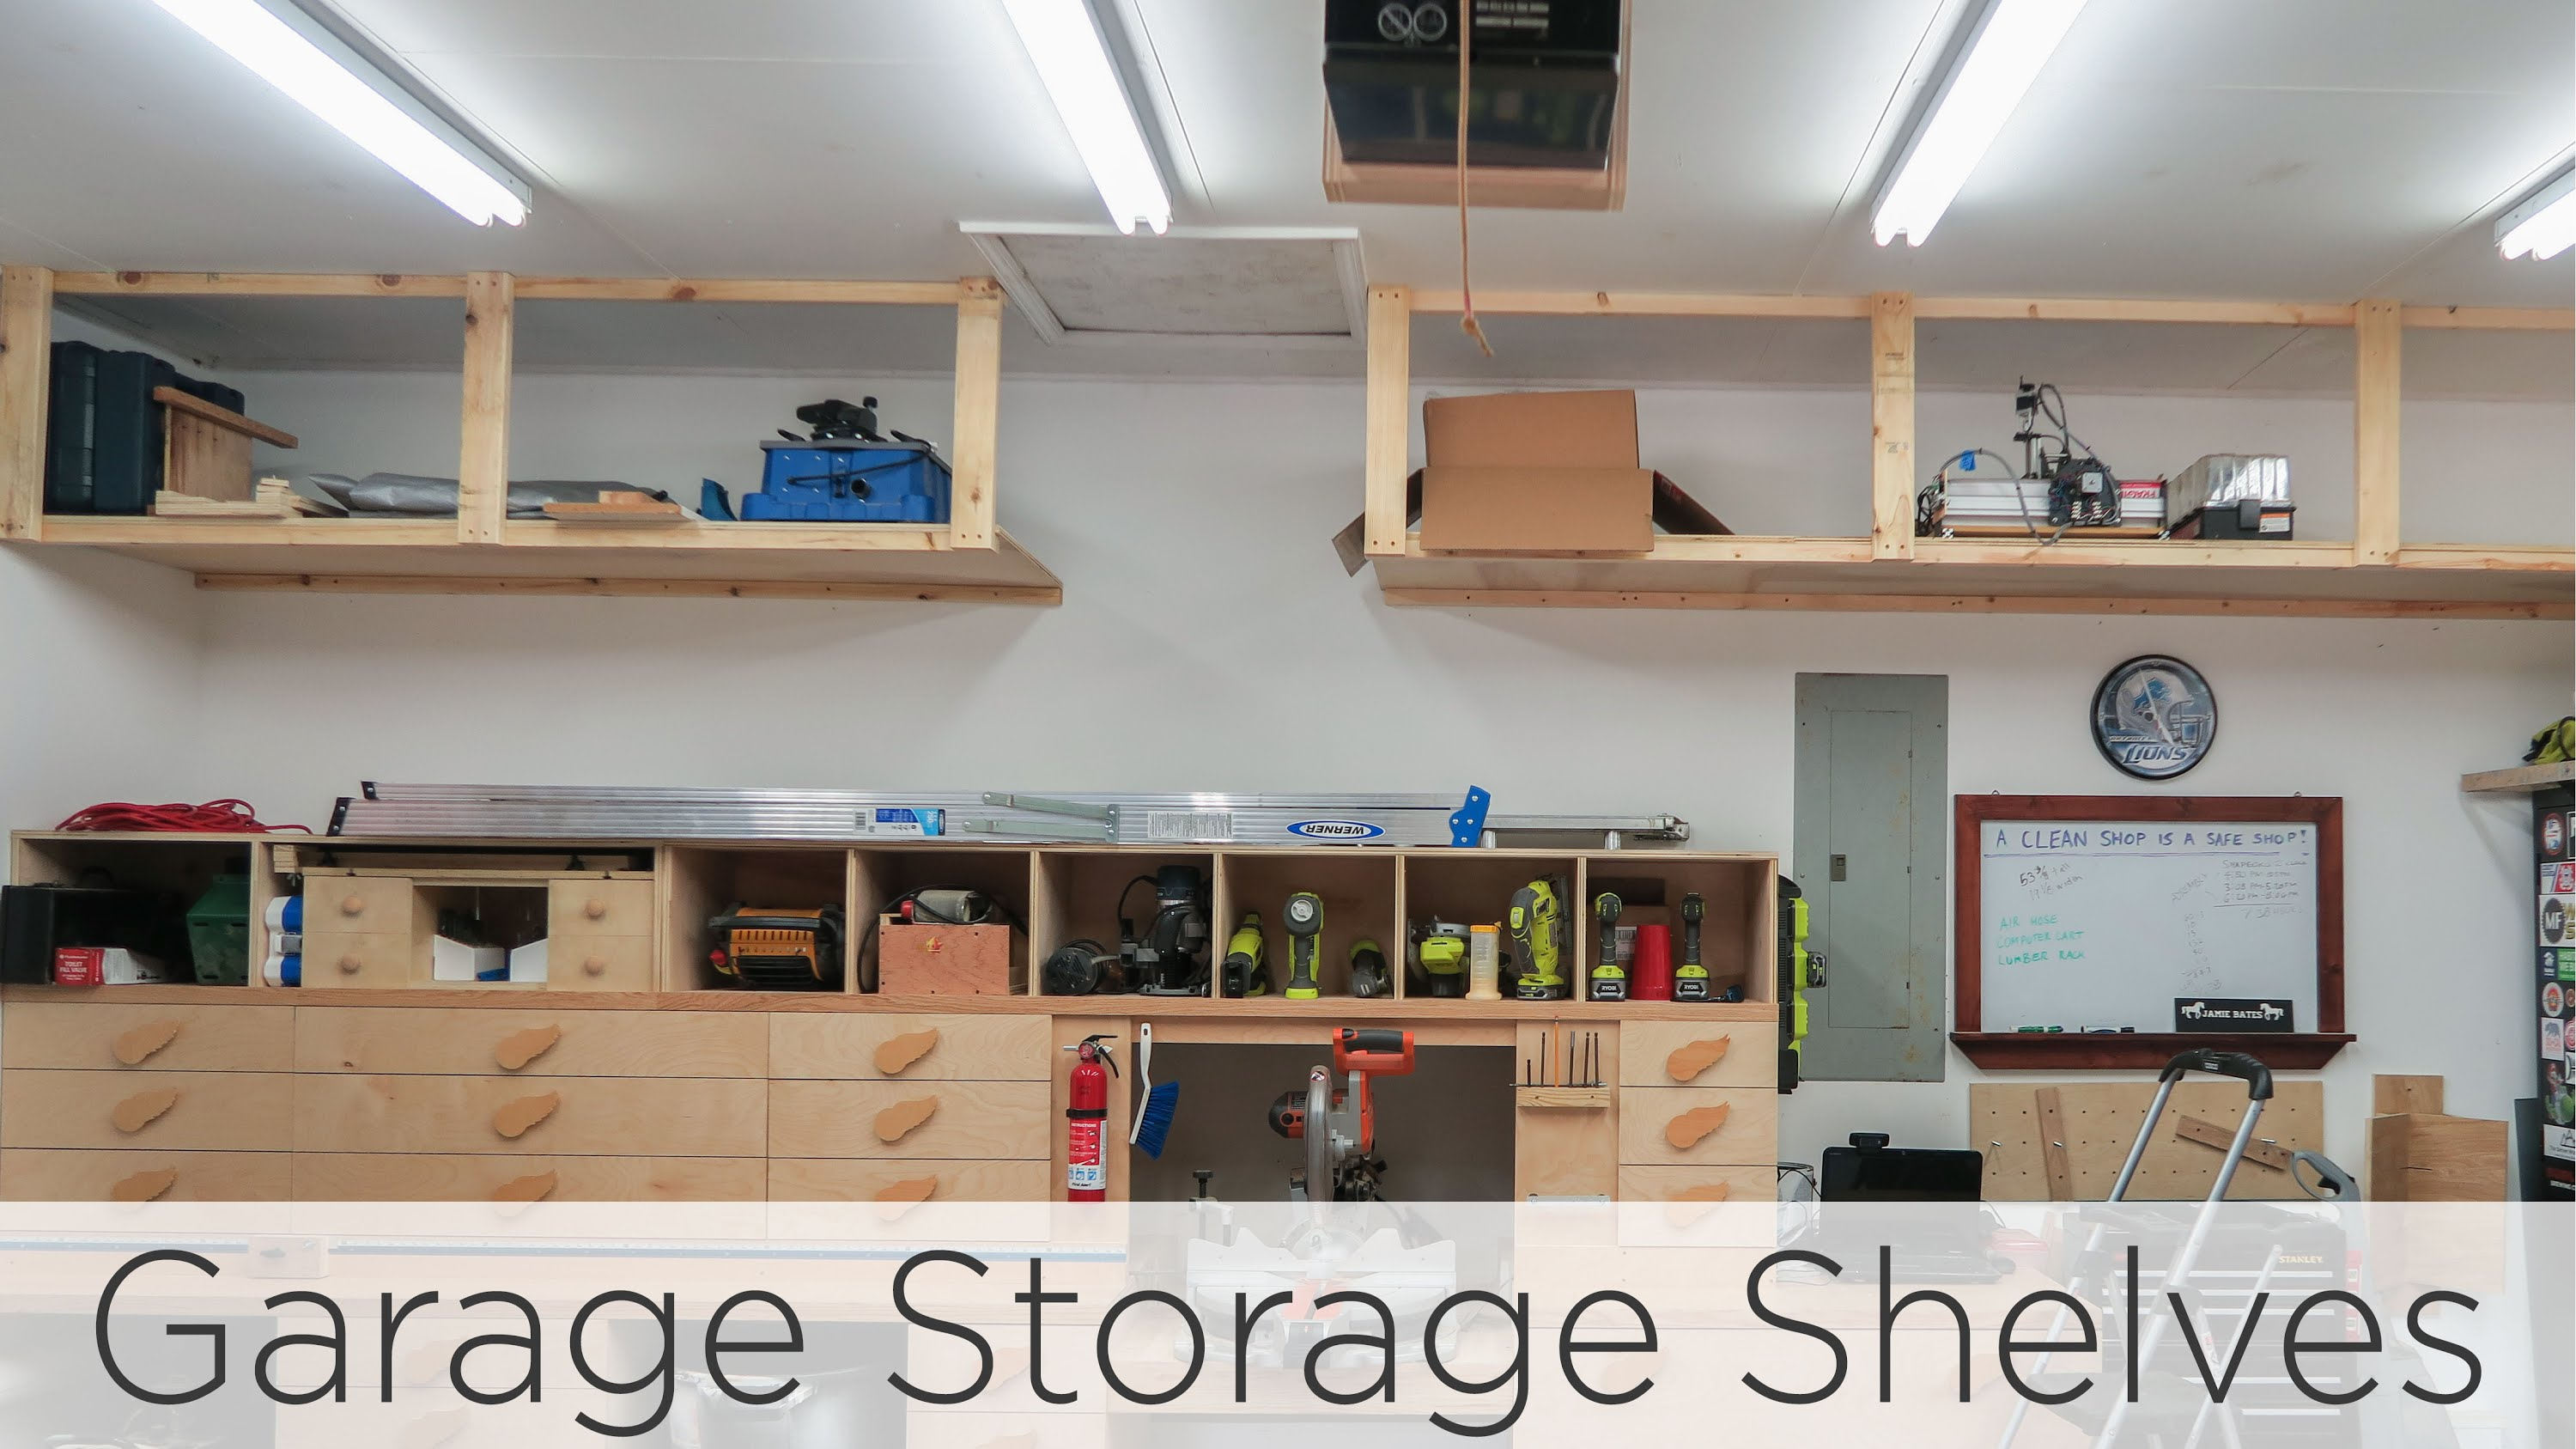 wasted space garage storage shelves - 202 -